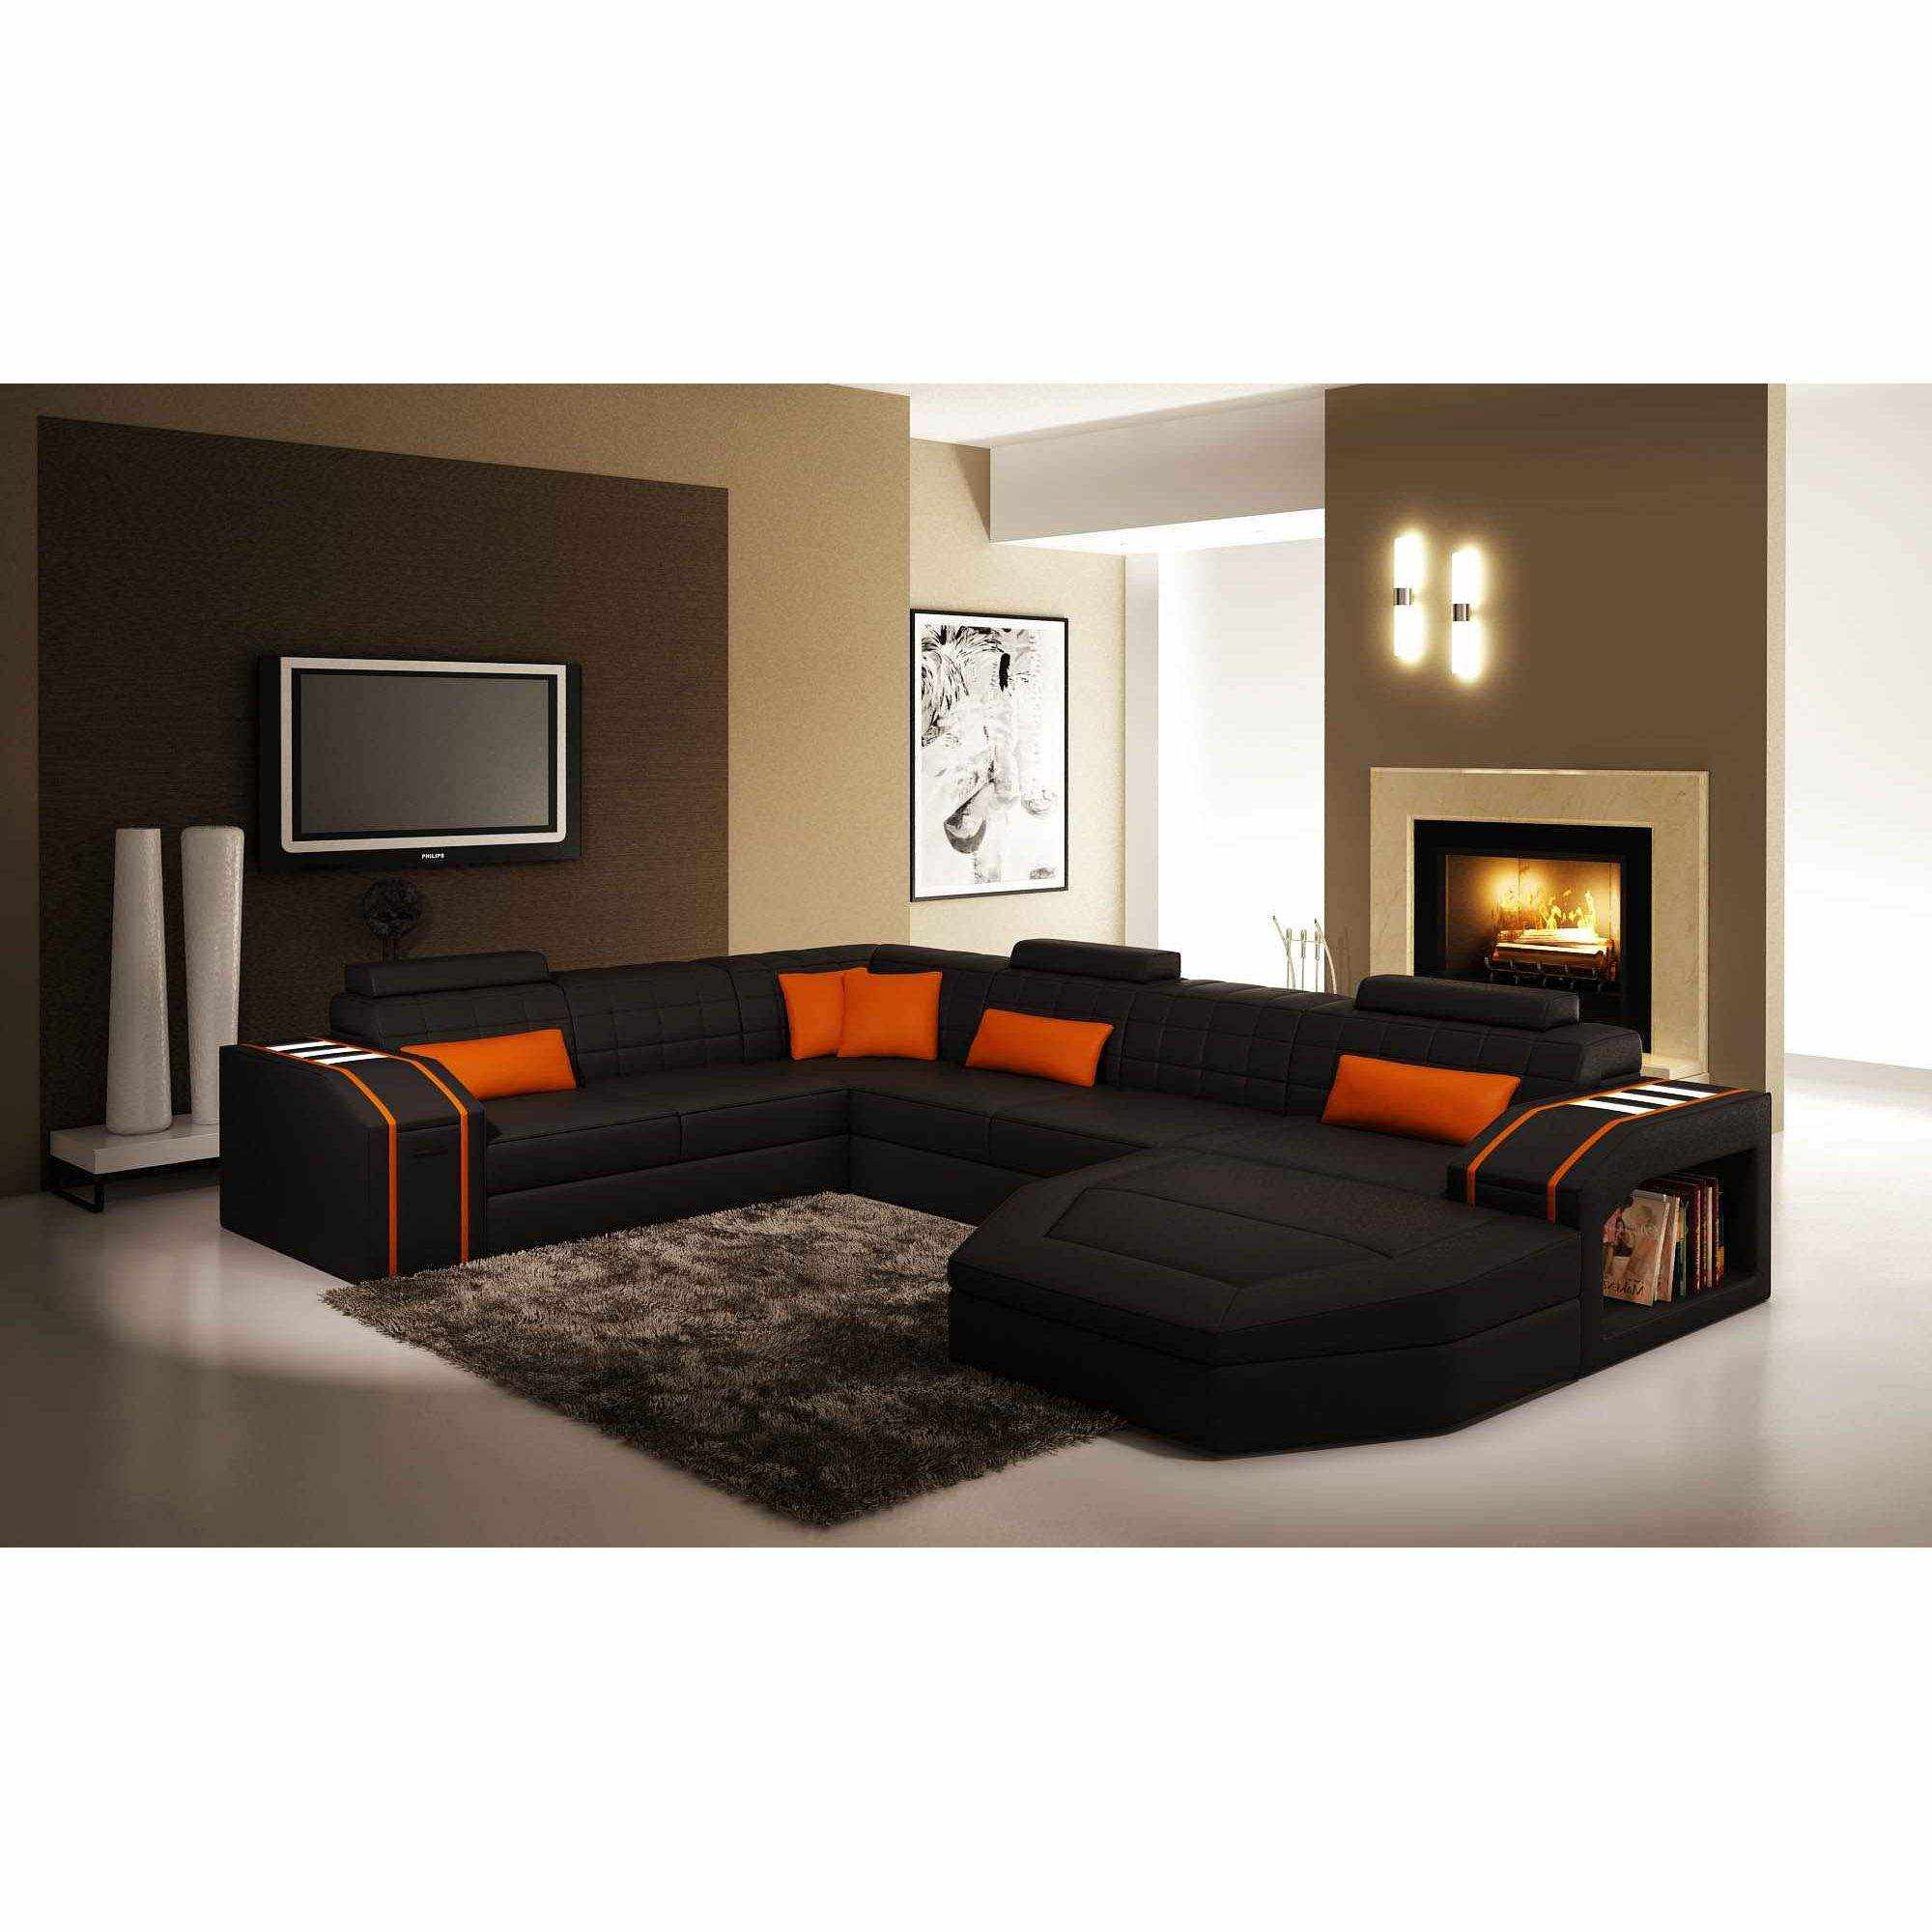 orange and black sofa bed sater uk deco in paris canape d angle panoramique cuir noir et